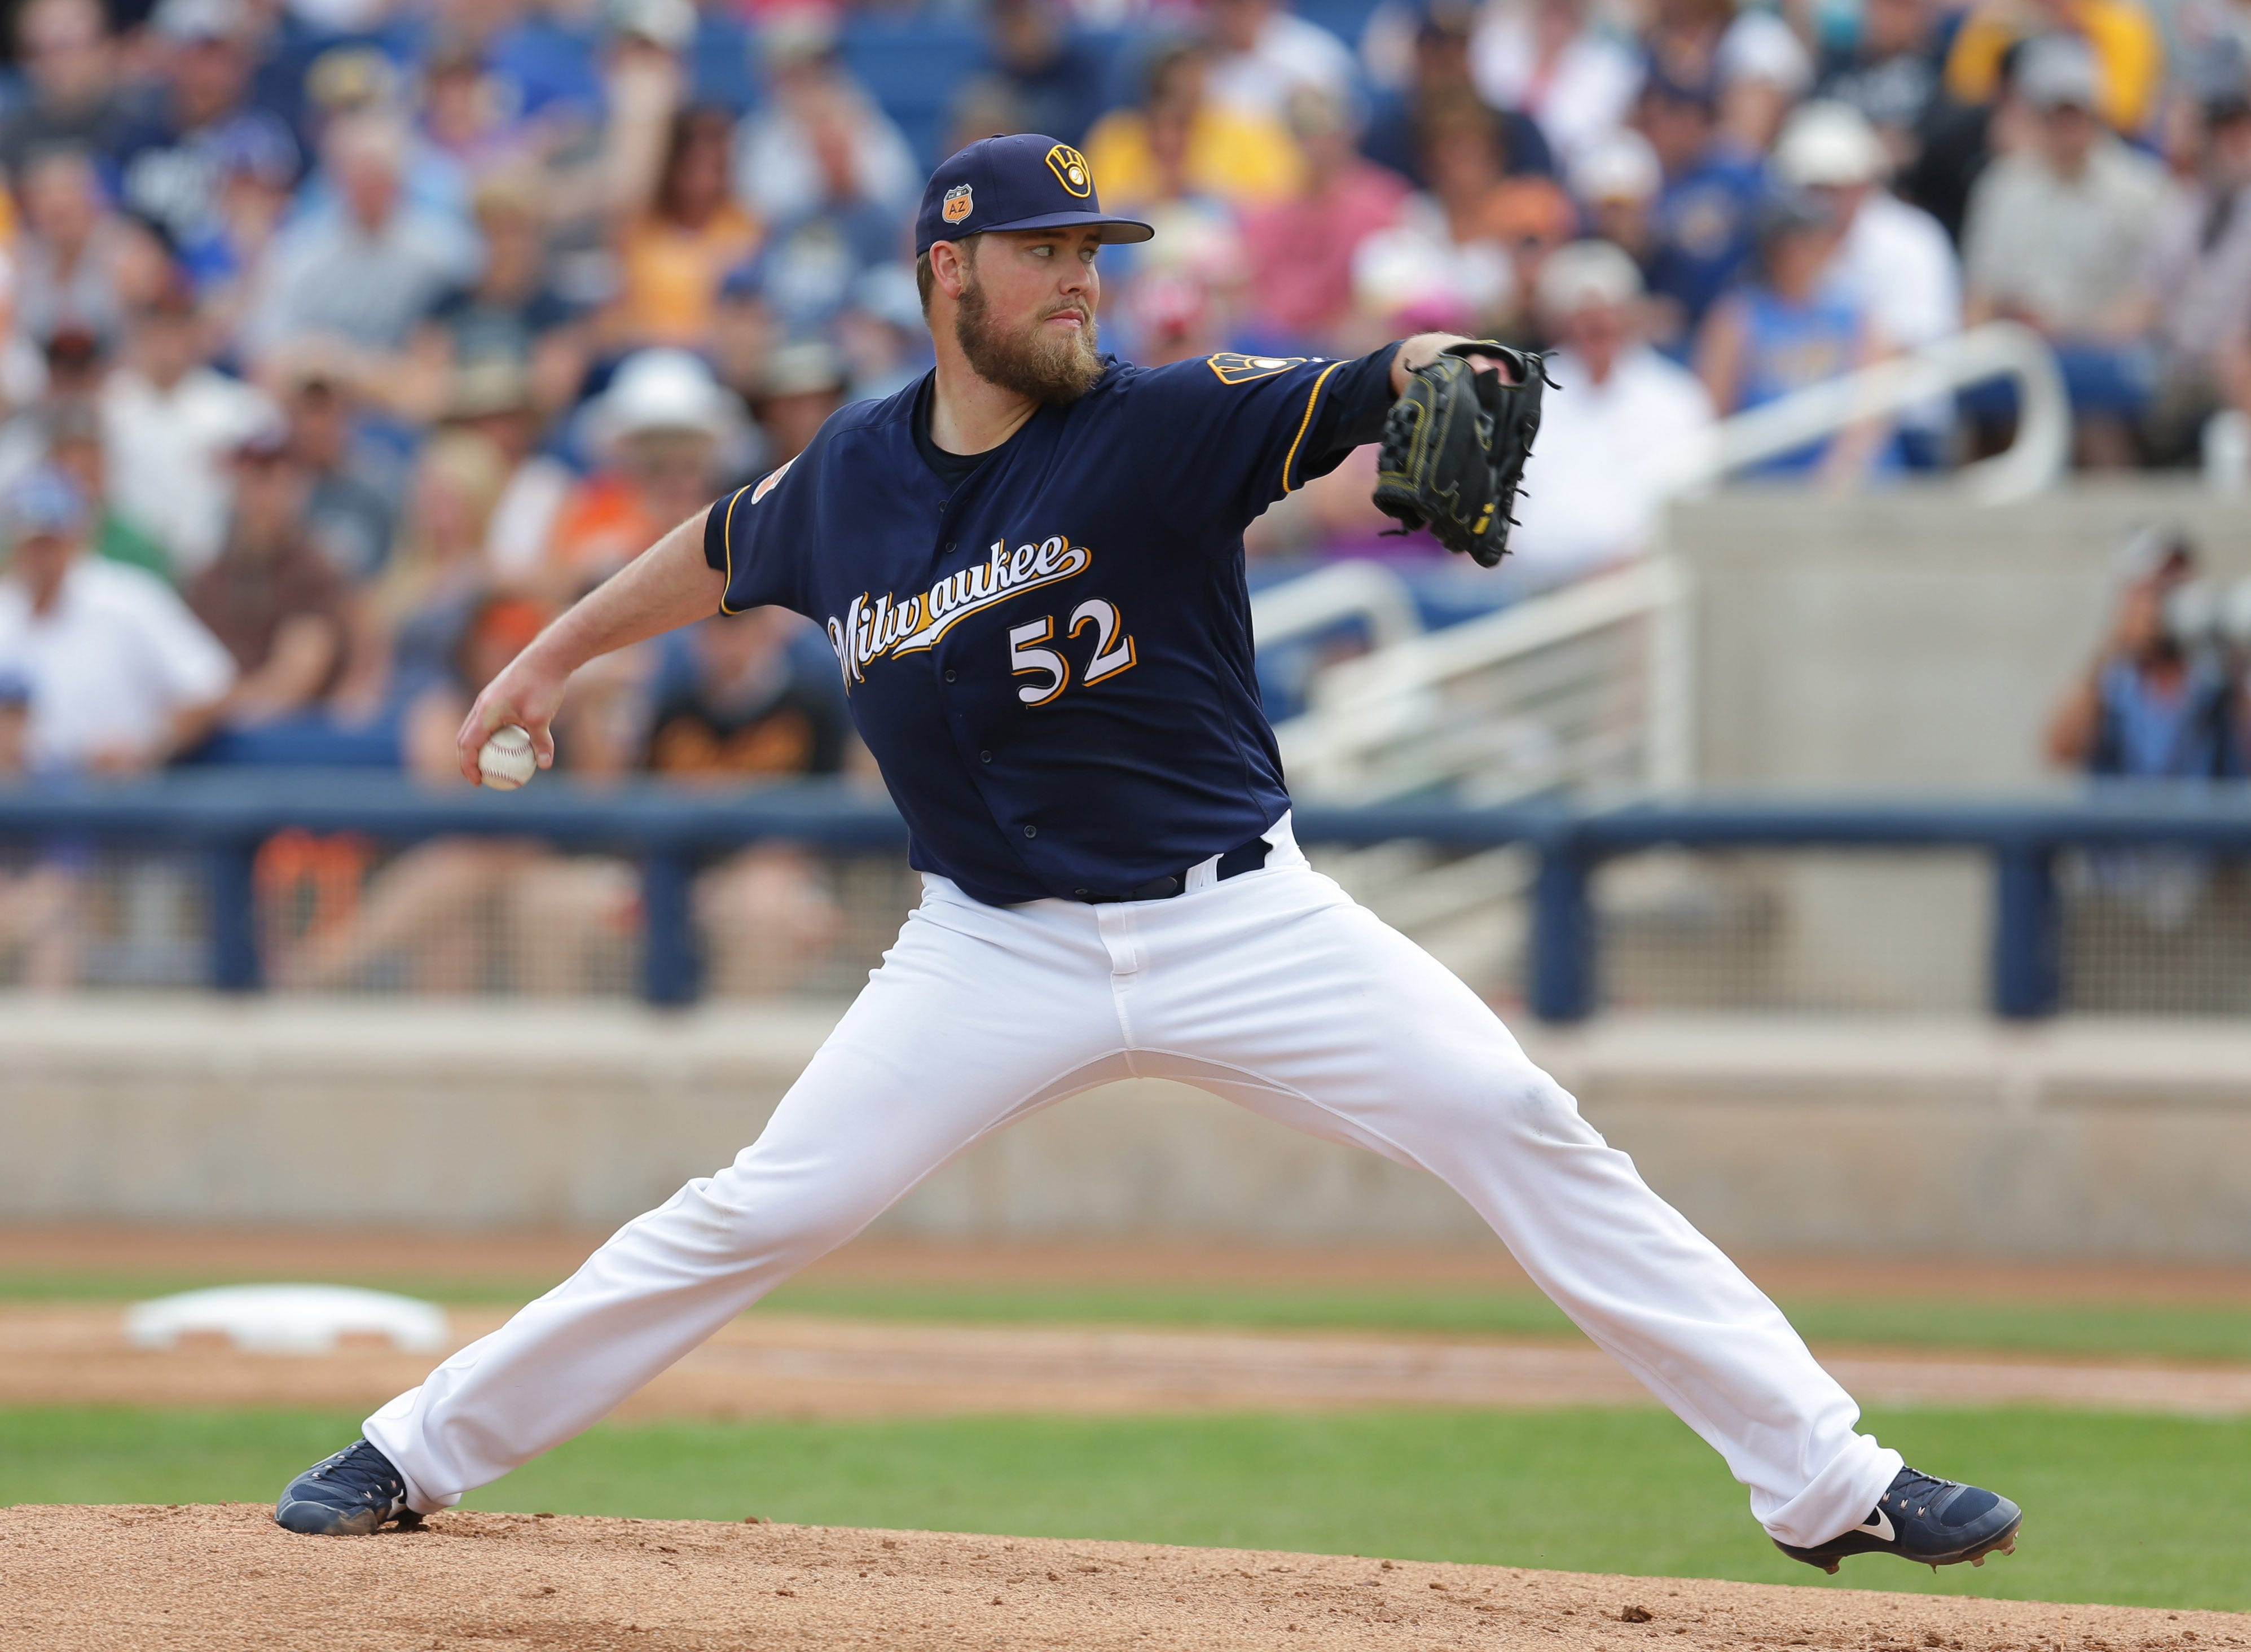 Game report: Jimmy Nelson solid, but Brewers fall to Giants